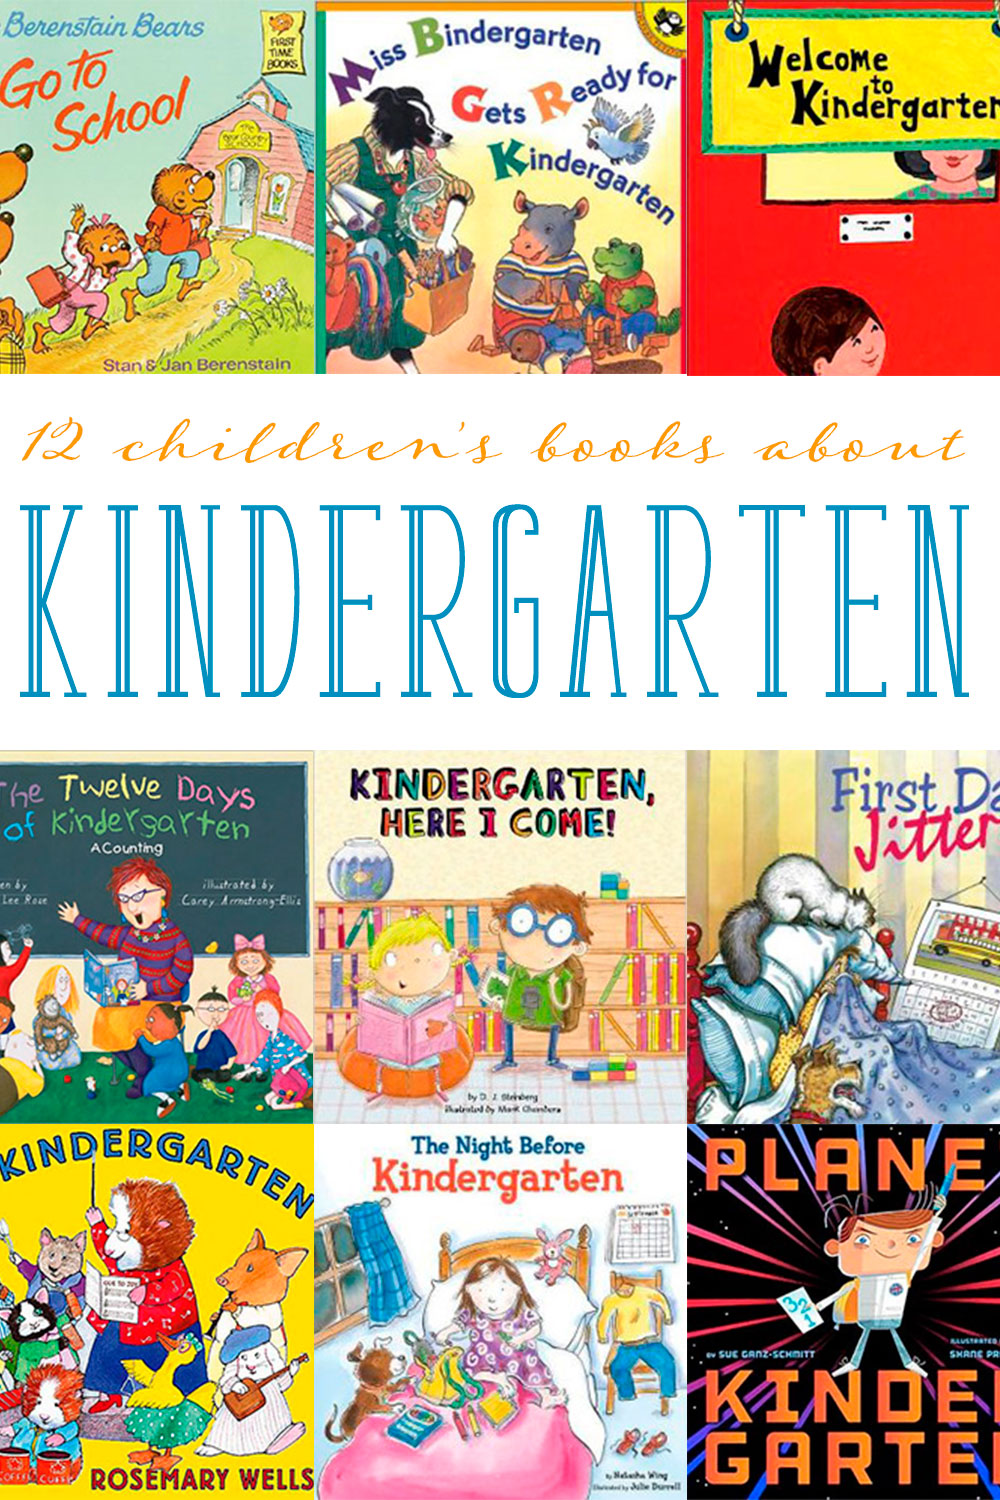 Is your child entering kindergarten? Here are 12 children's books about kindergarten to help with the transition.